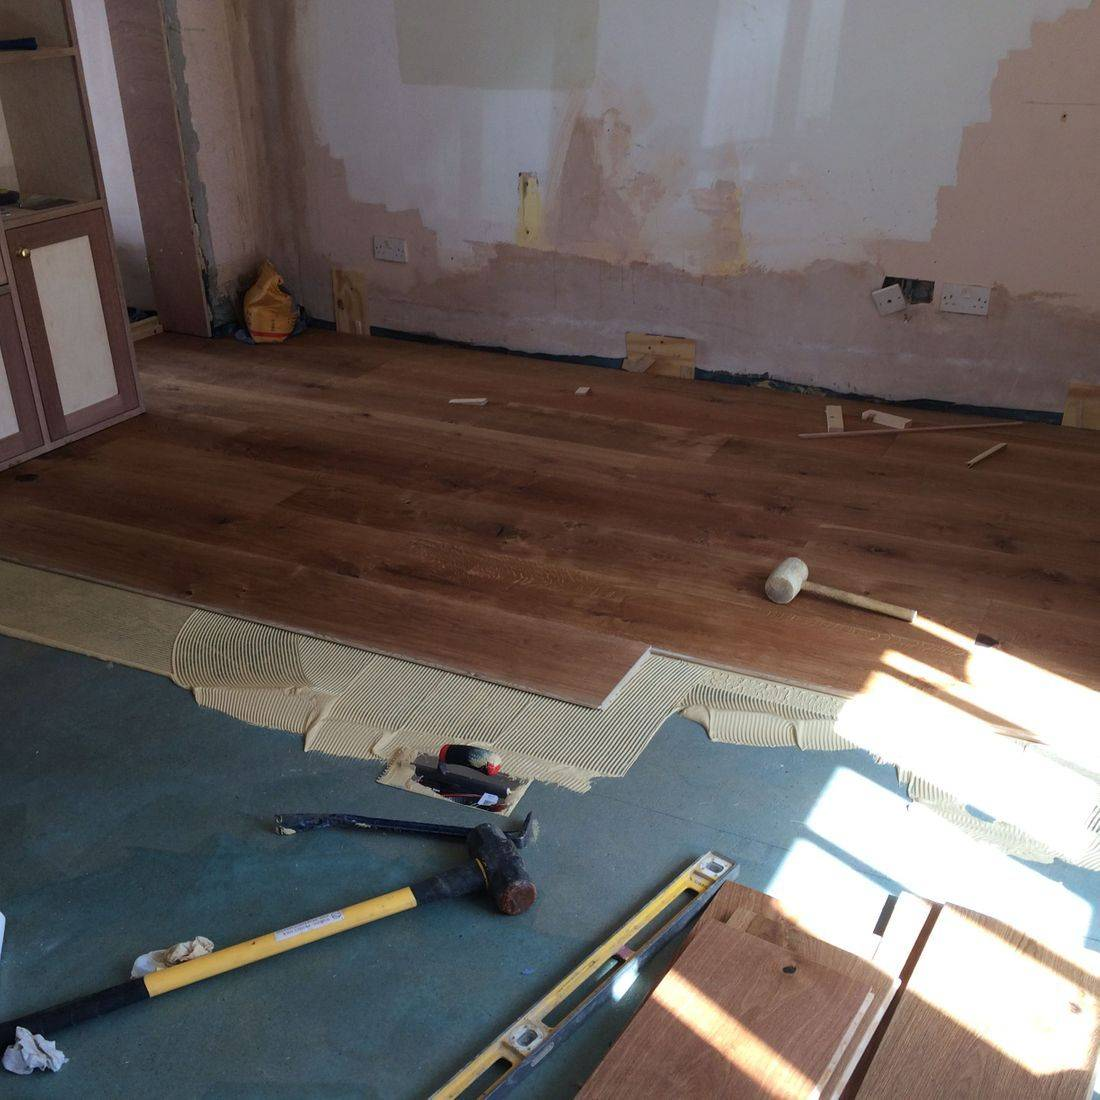 Self levelling anahydrate screed primed ready to apply directly fixed Oak floor boards.